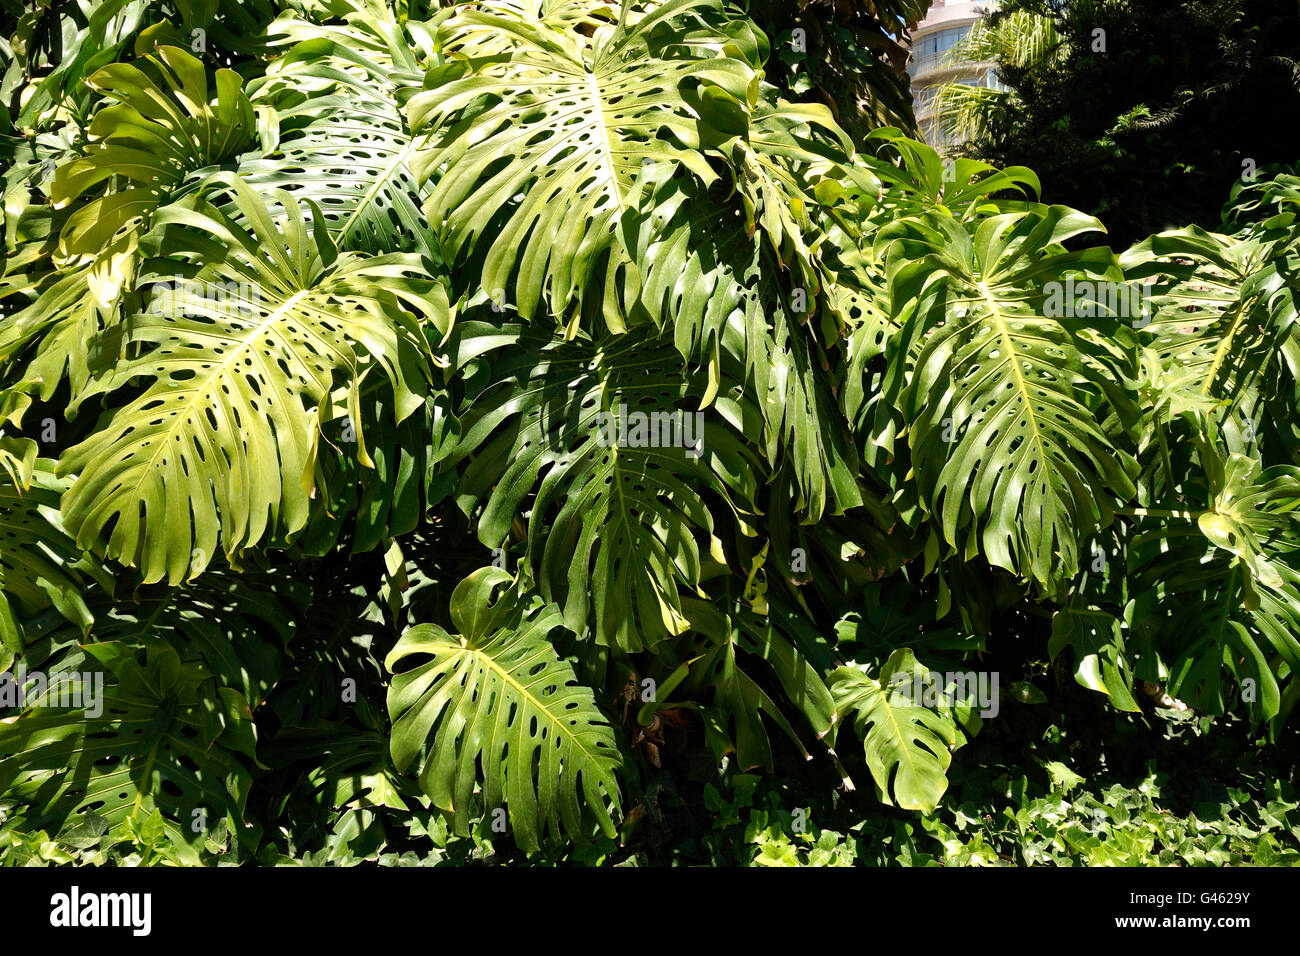 Mexican Breadfruit or Swiss Cheese Plant, Monstera Deliciosa, in garden, Spain. - Stock Image